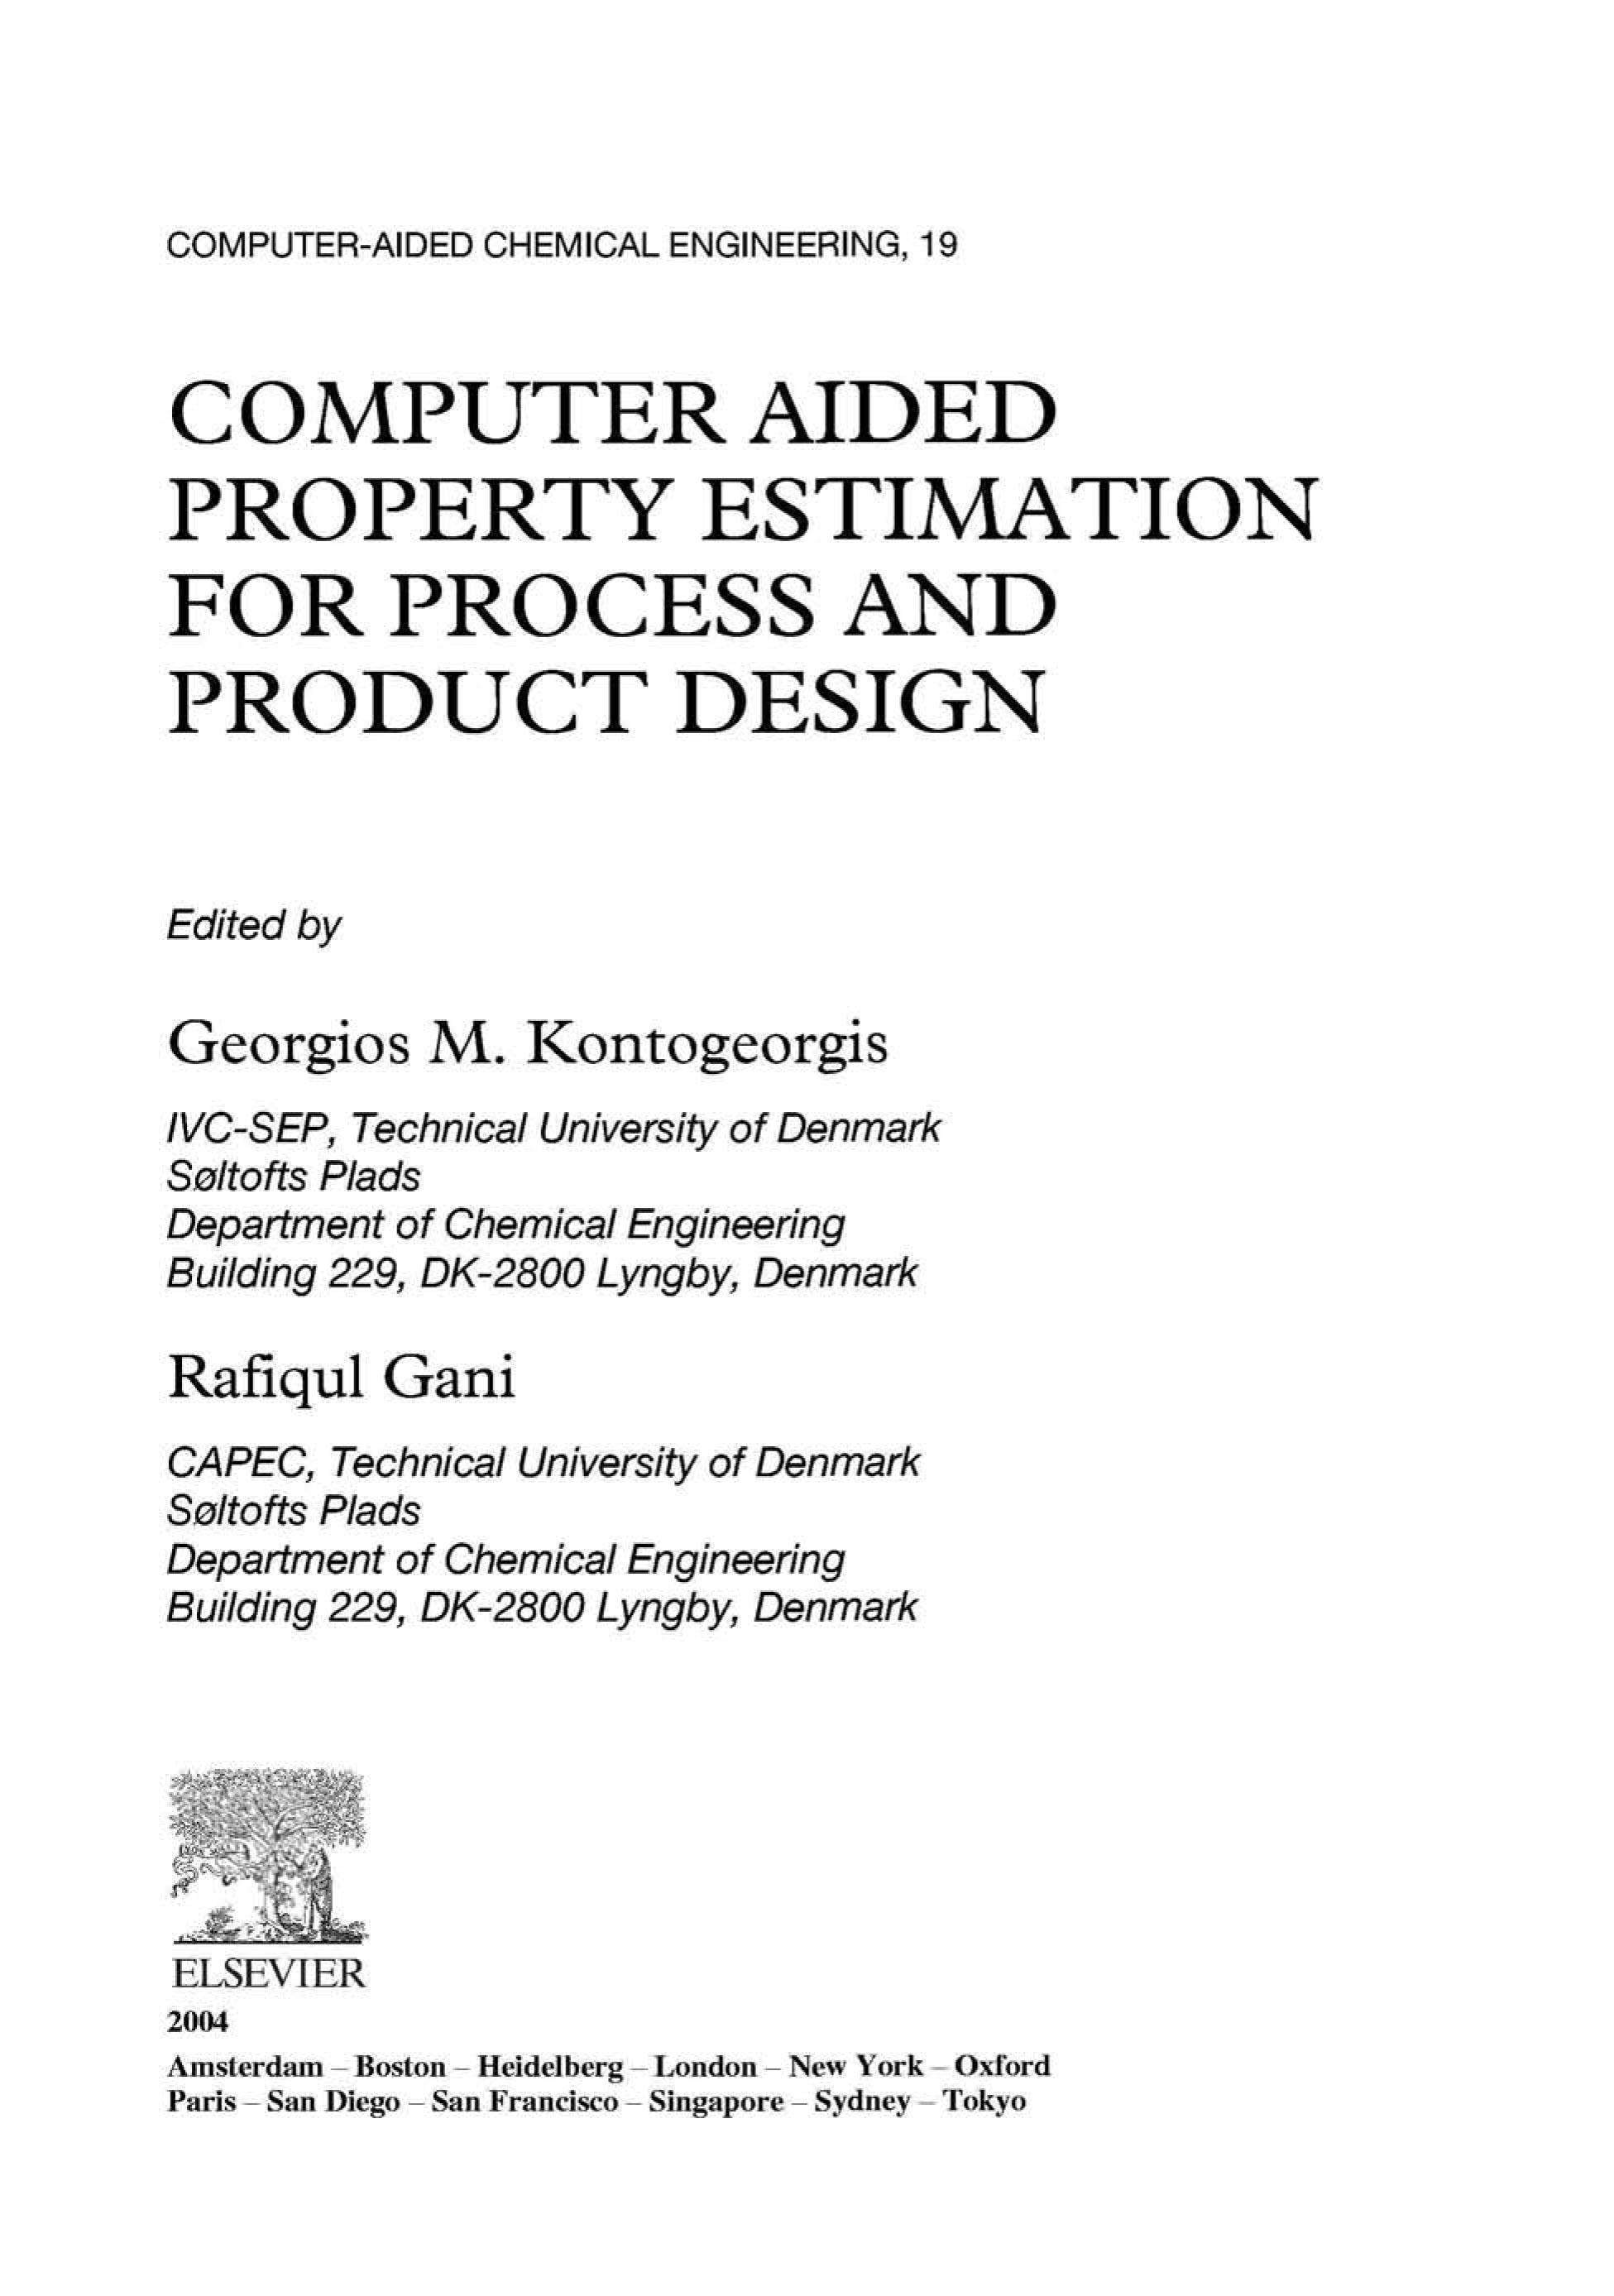 Computer Aided Property Estimation for Process and Product Design: Computers Aided Chemical Engineering, Volume 19